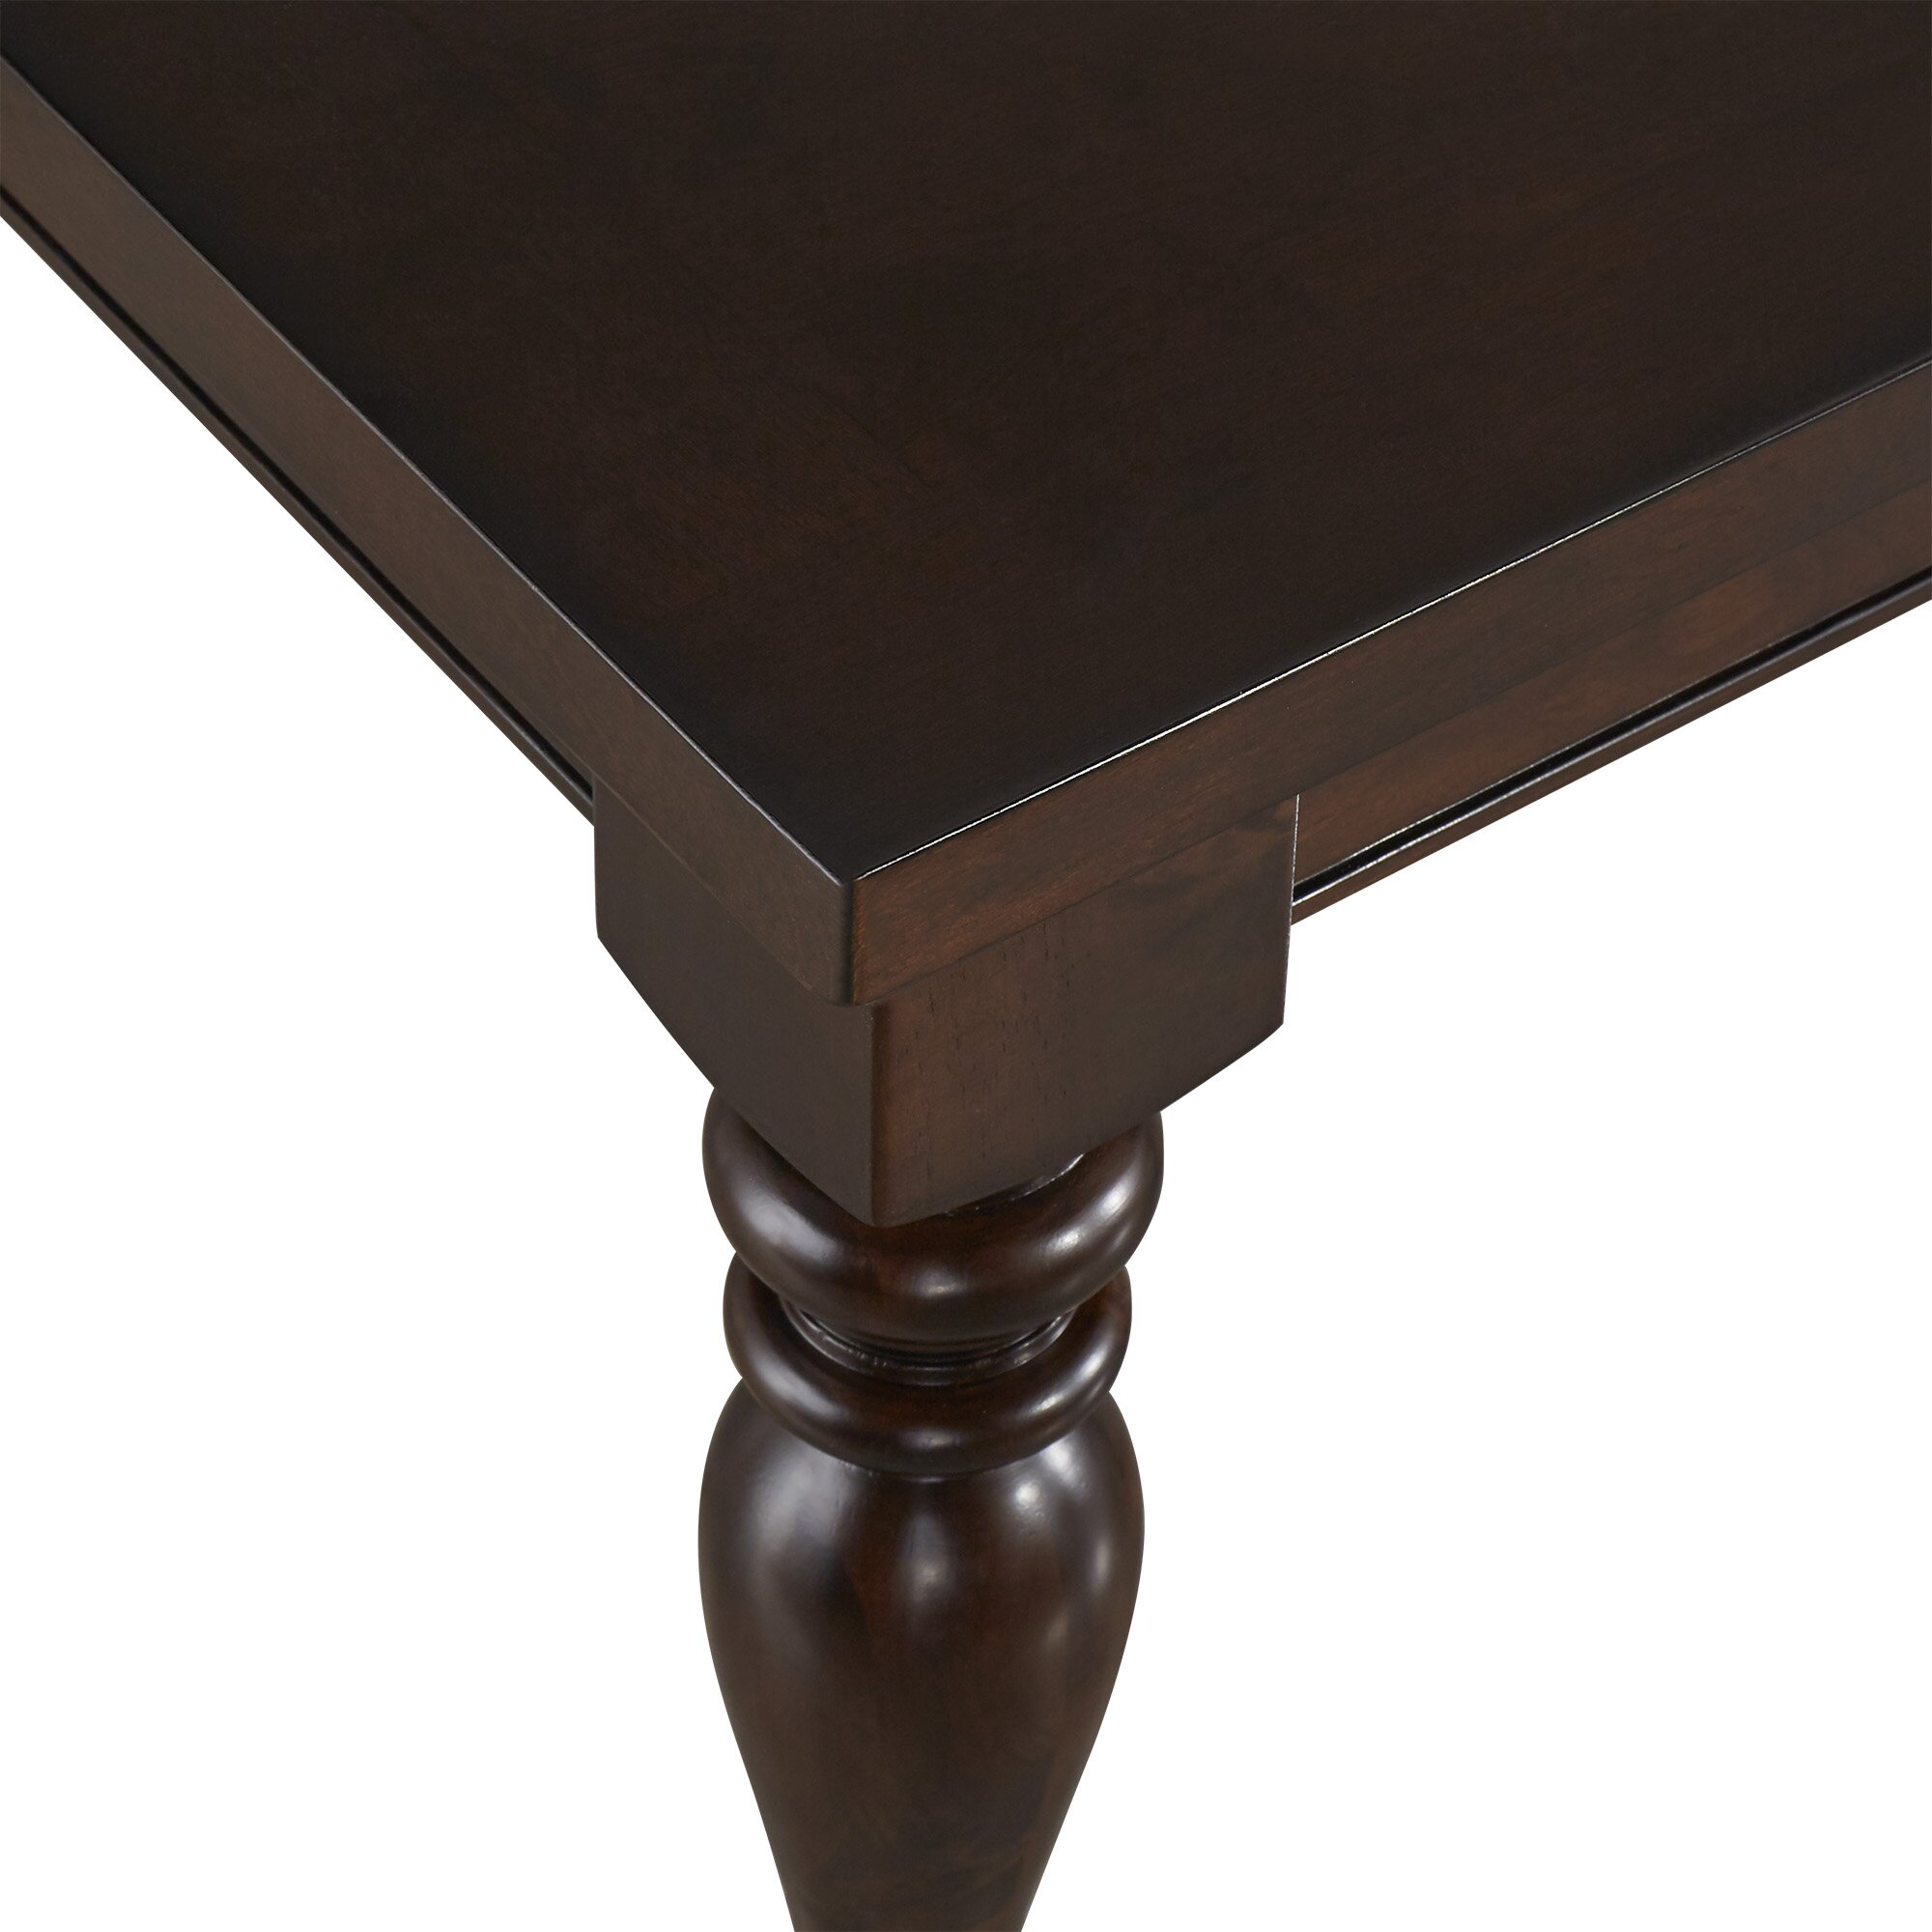 Darby Home Co Hilliard Extendable Dining Table amp Reviews  : Darby Home Co25C225AE Hilliard Extendable Dining Table from www.wayfair.com size 2000 x 2000 jpeg 299kB